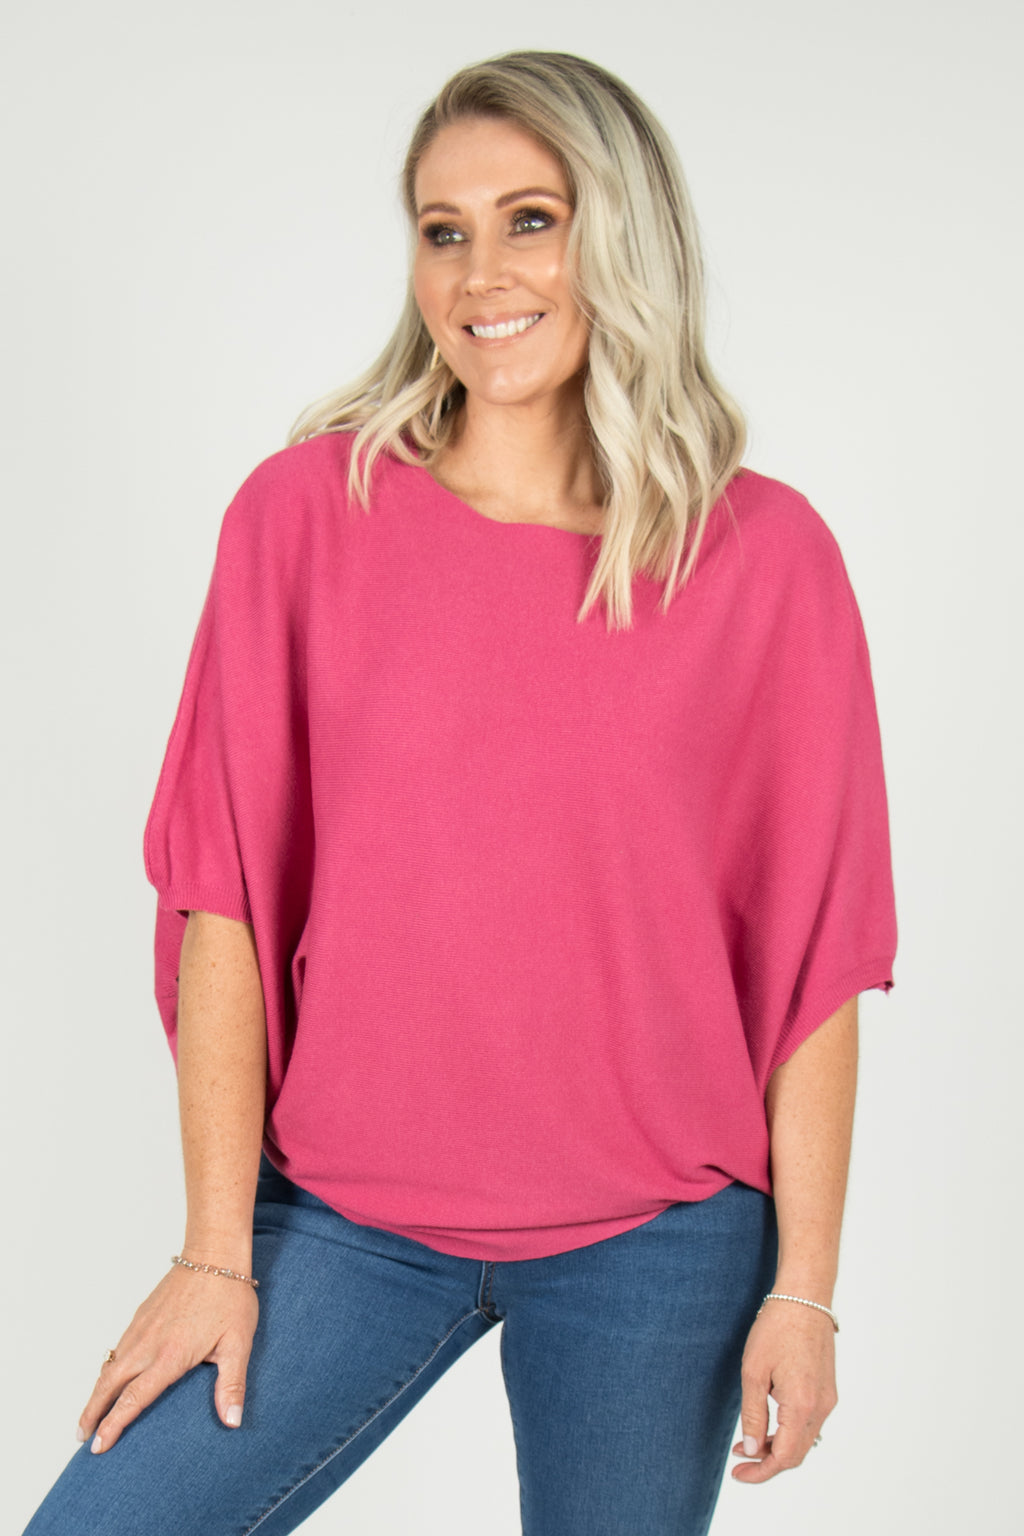 Kenna Knit Top in Hot Pink